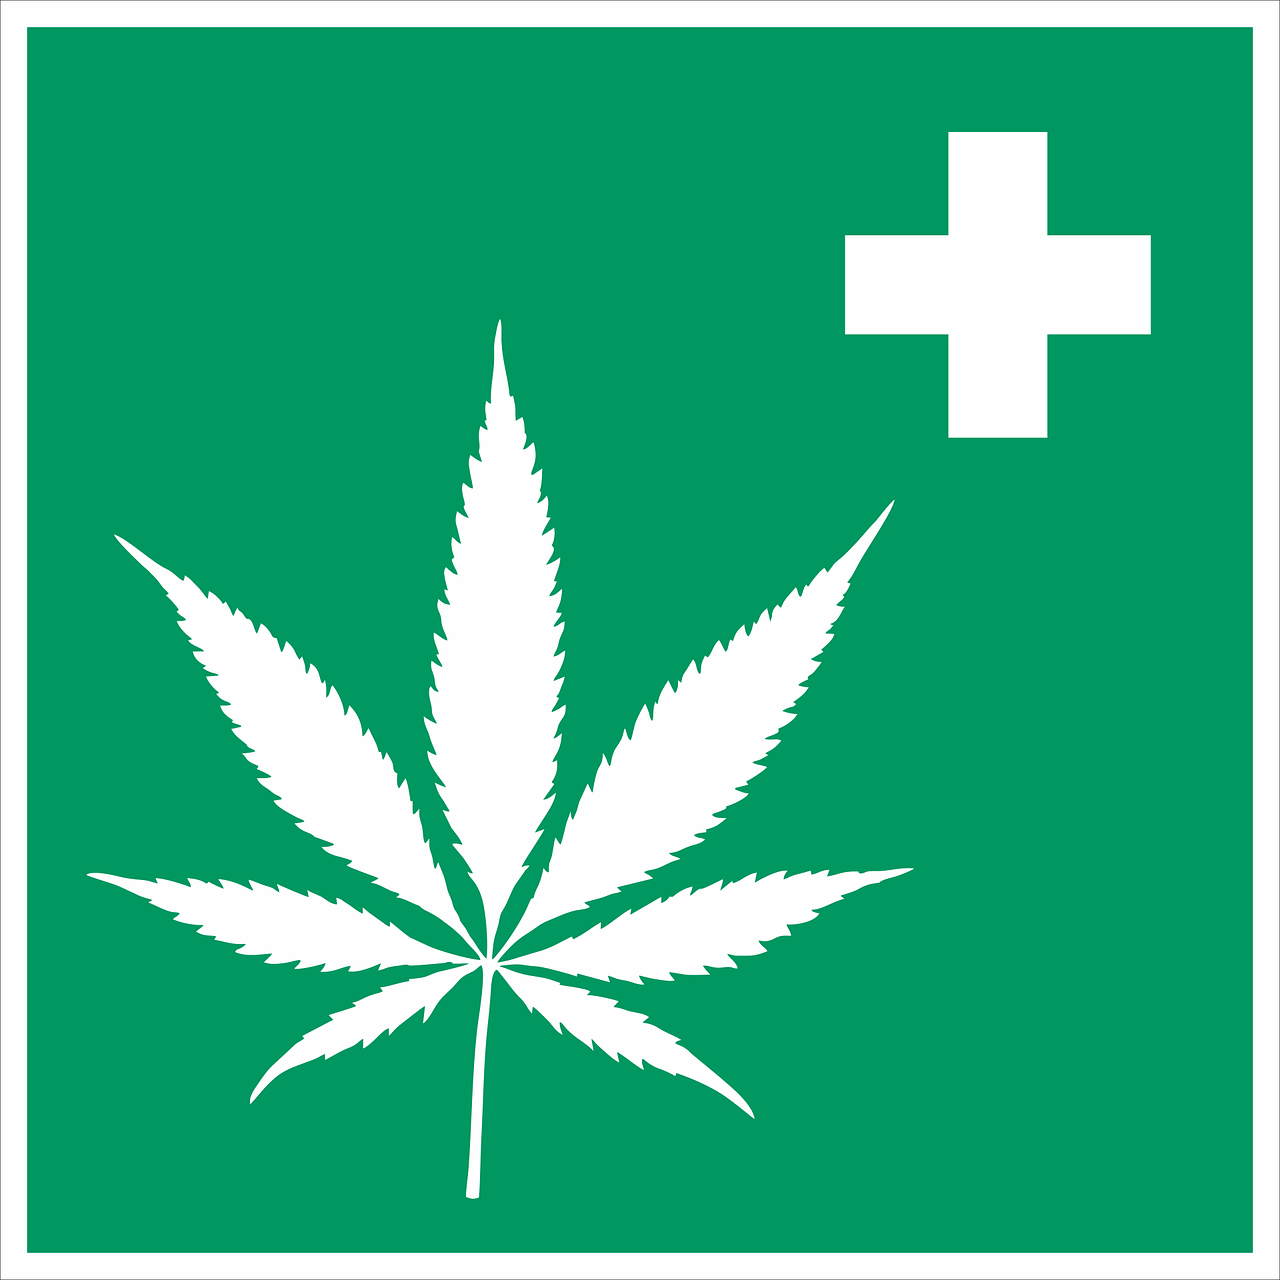 Cannabis,hemp,intoxicant,hemp leaf,medicine - free image from needpix.com